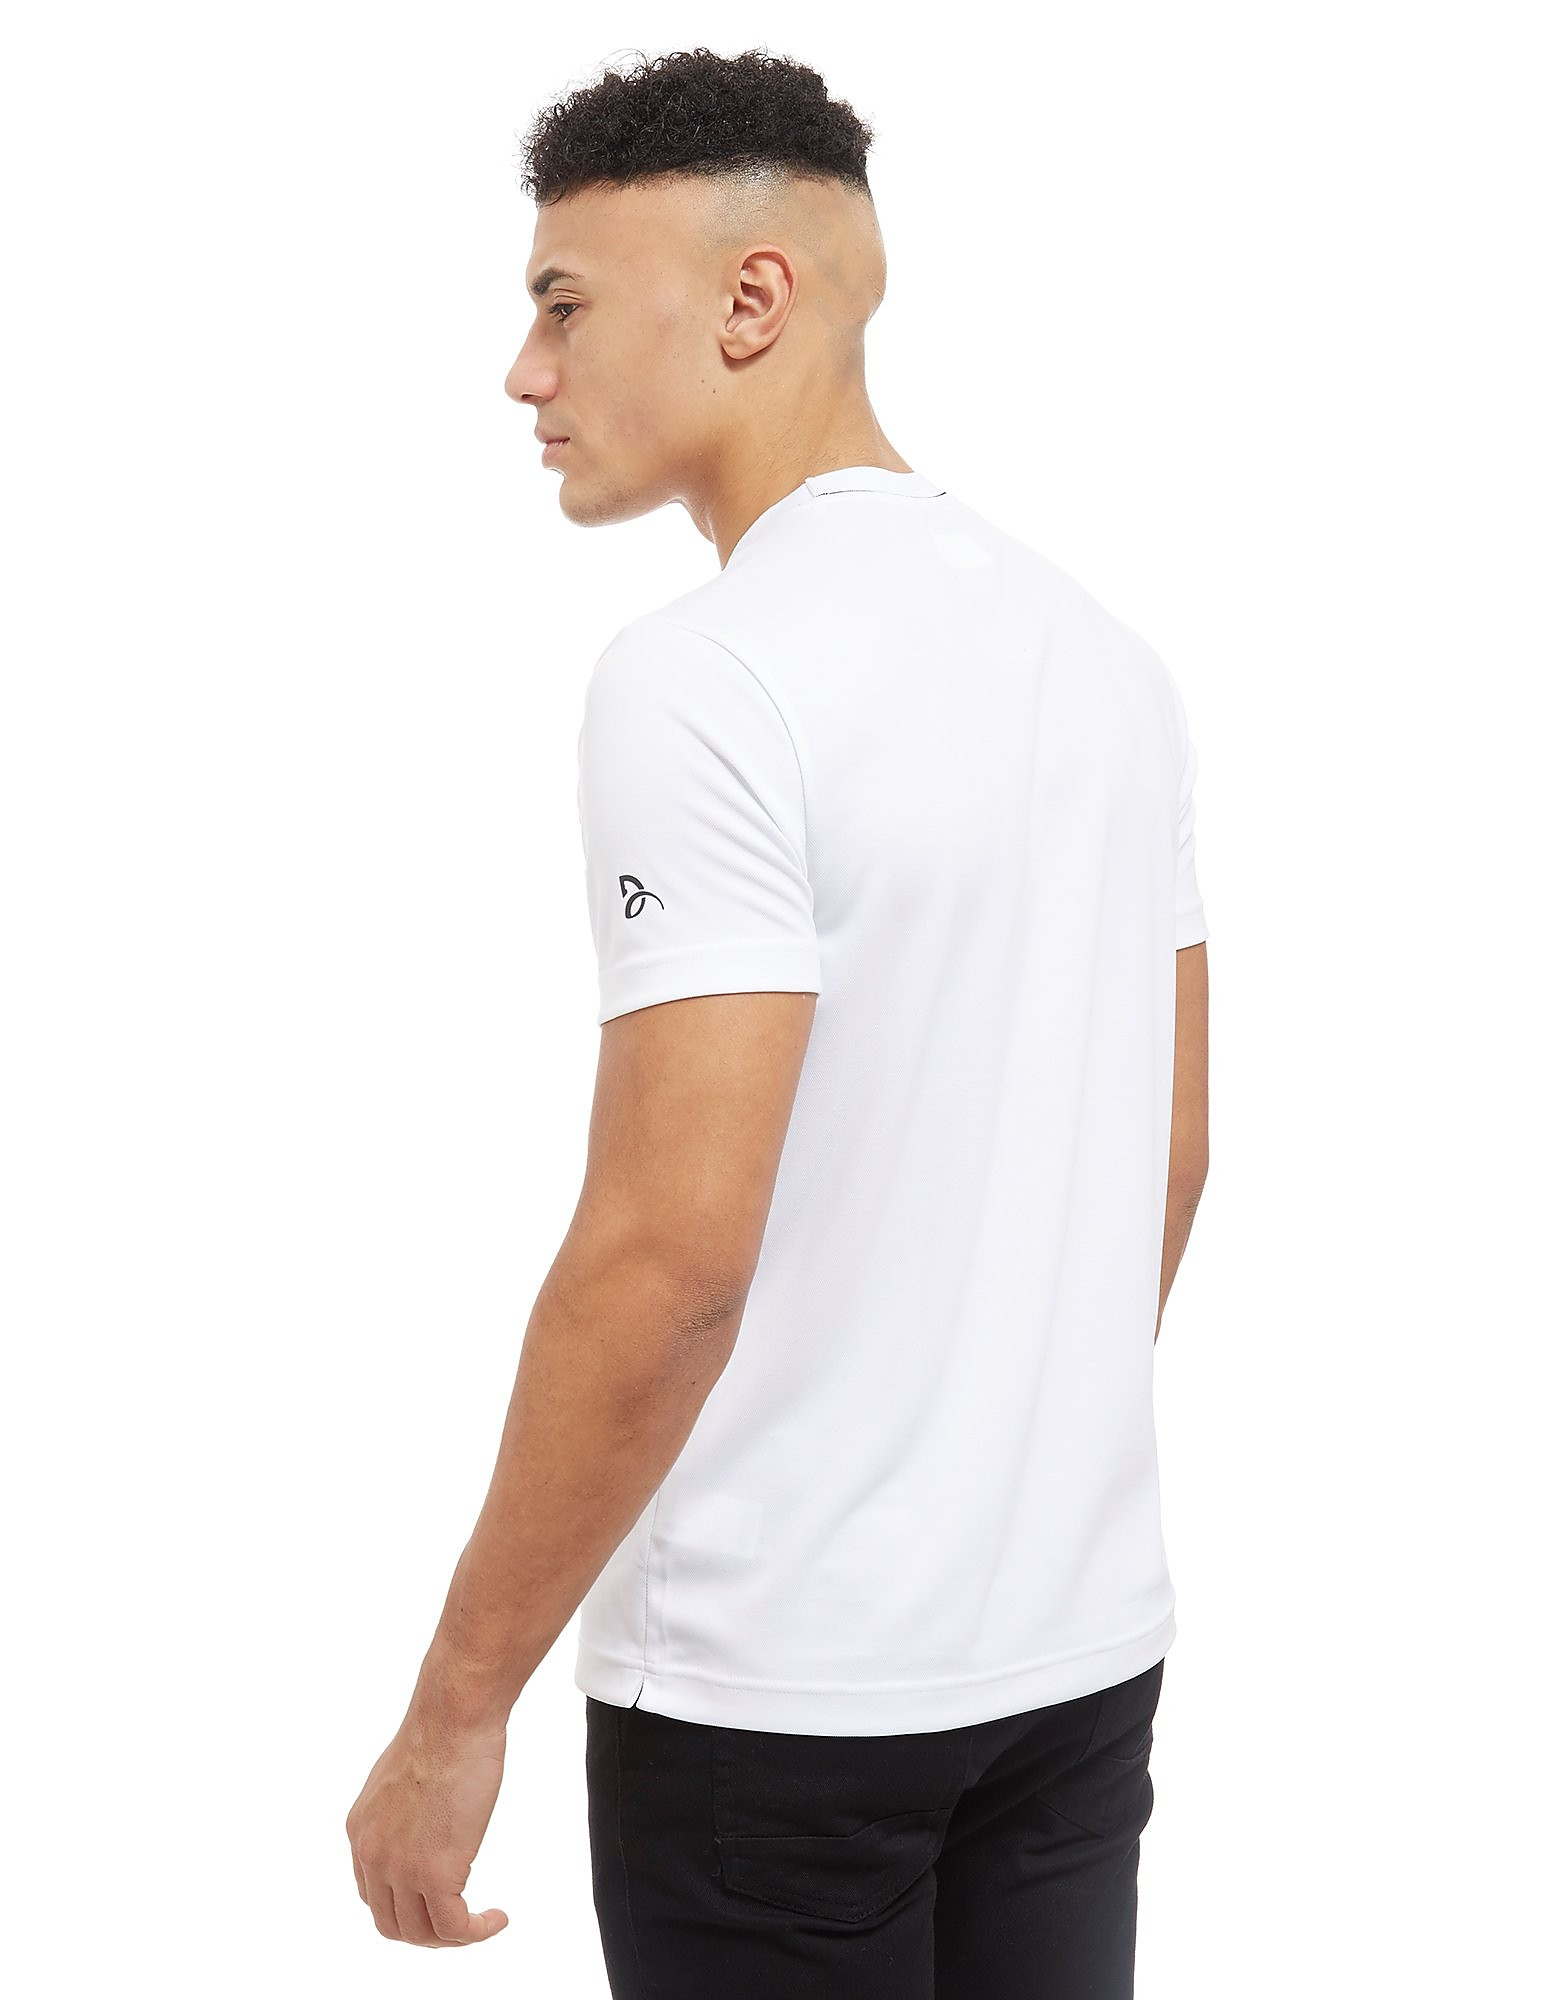 Lacoste Djokovic Colourblock Tech T-Shirt